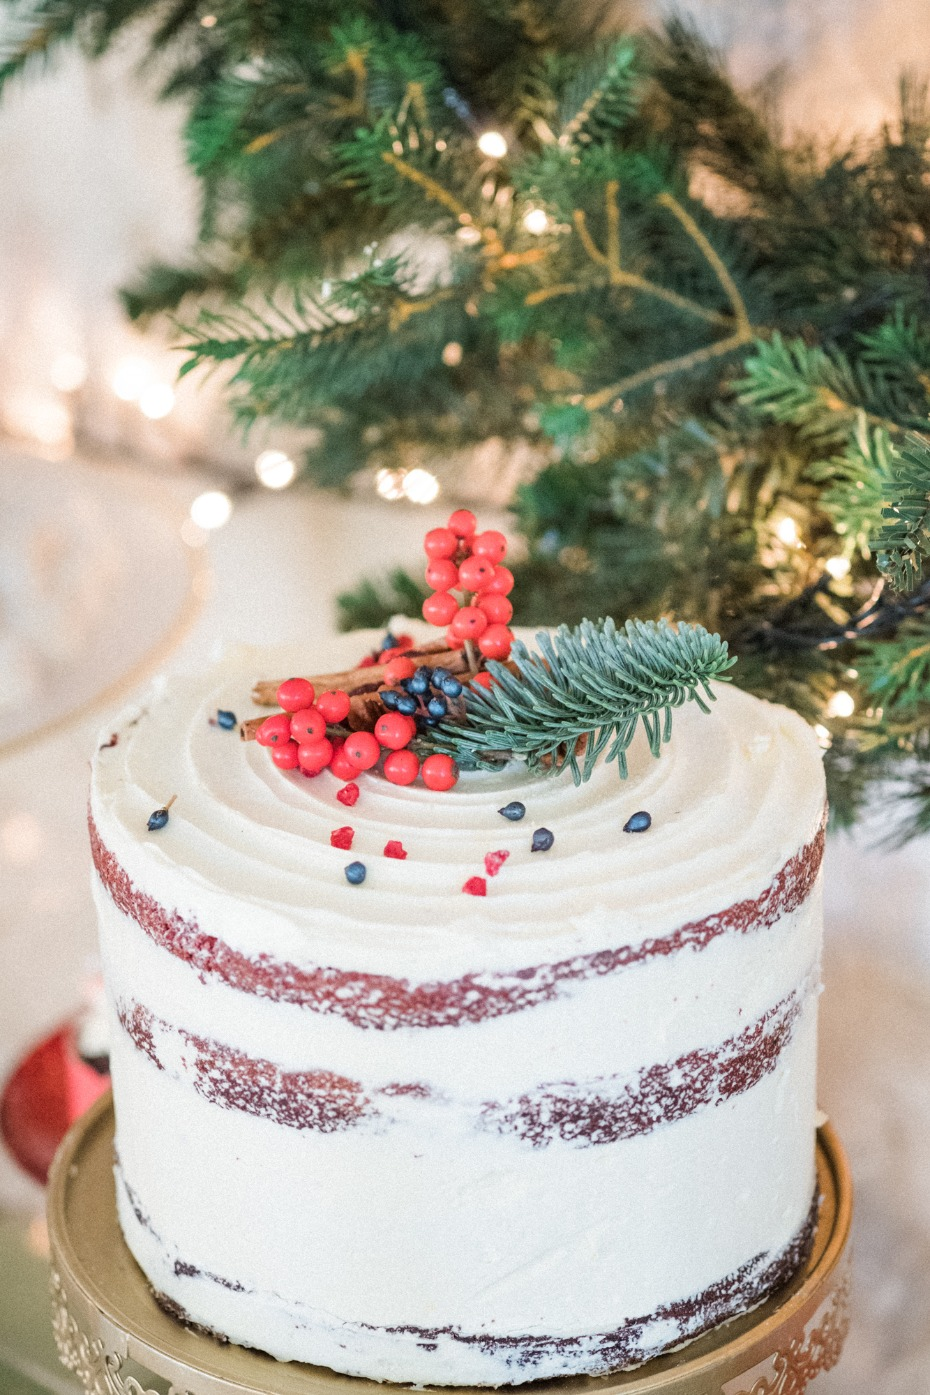 Naked wintery cake for Christmas